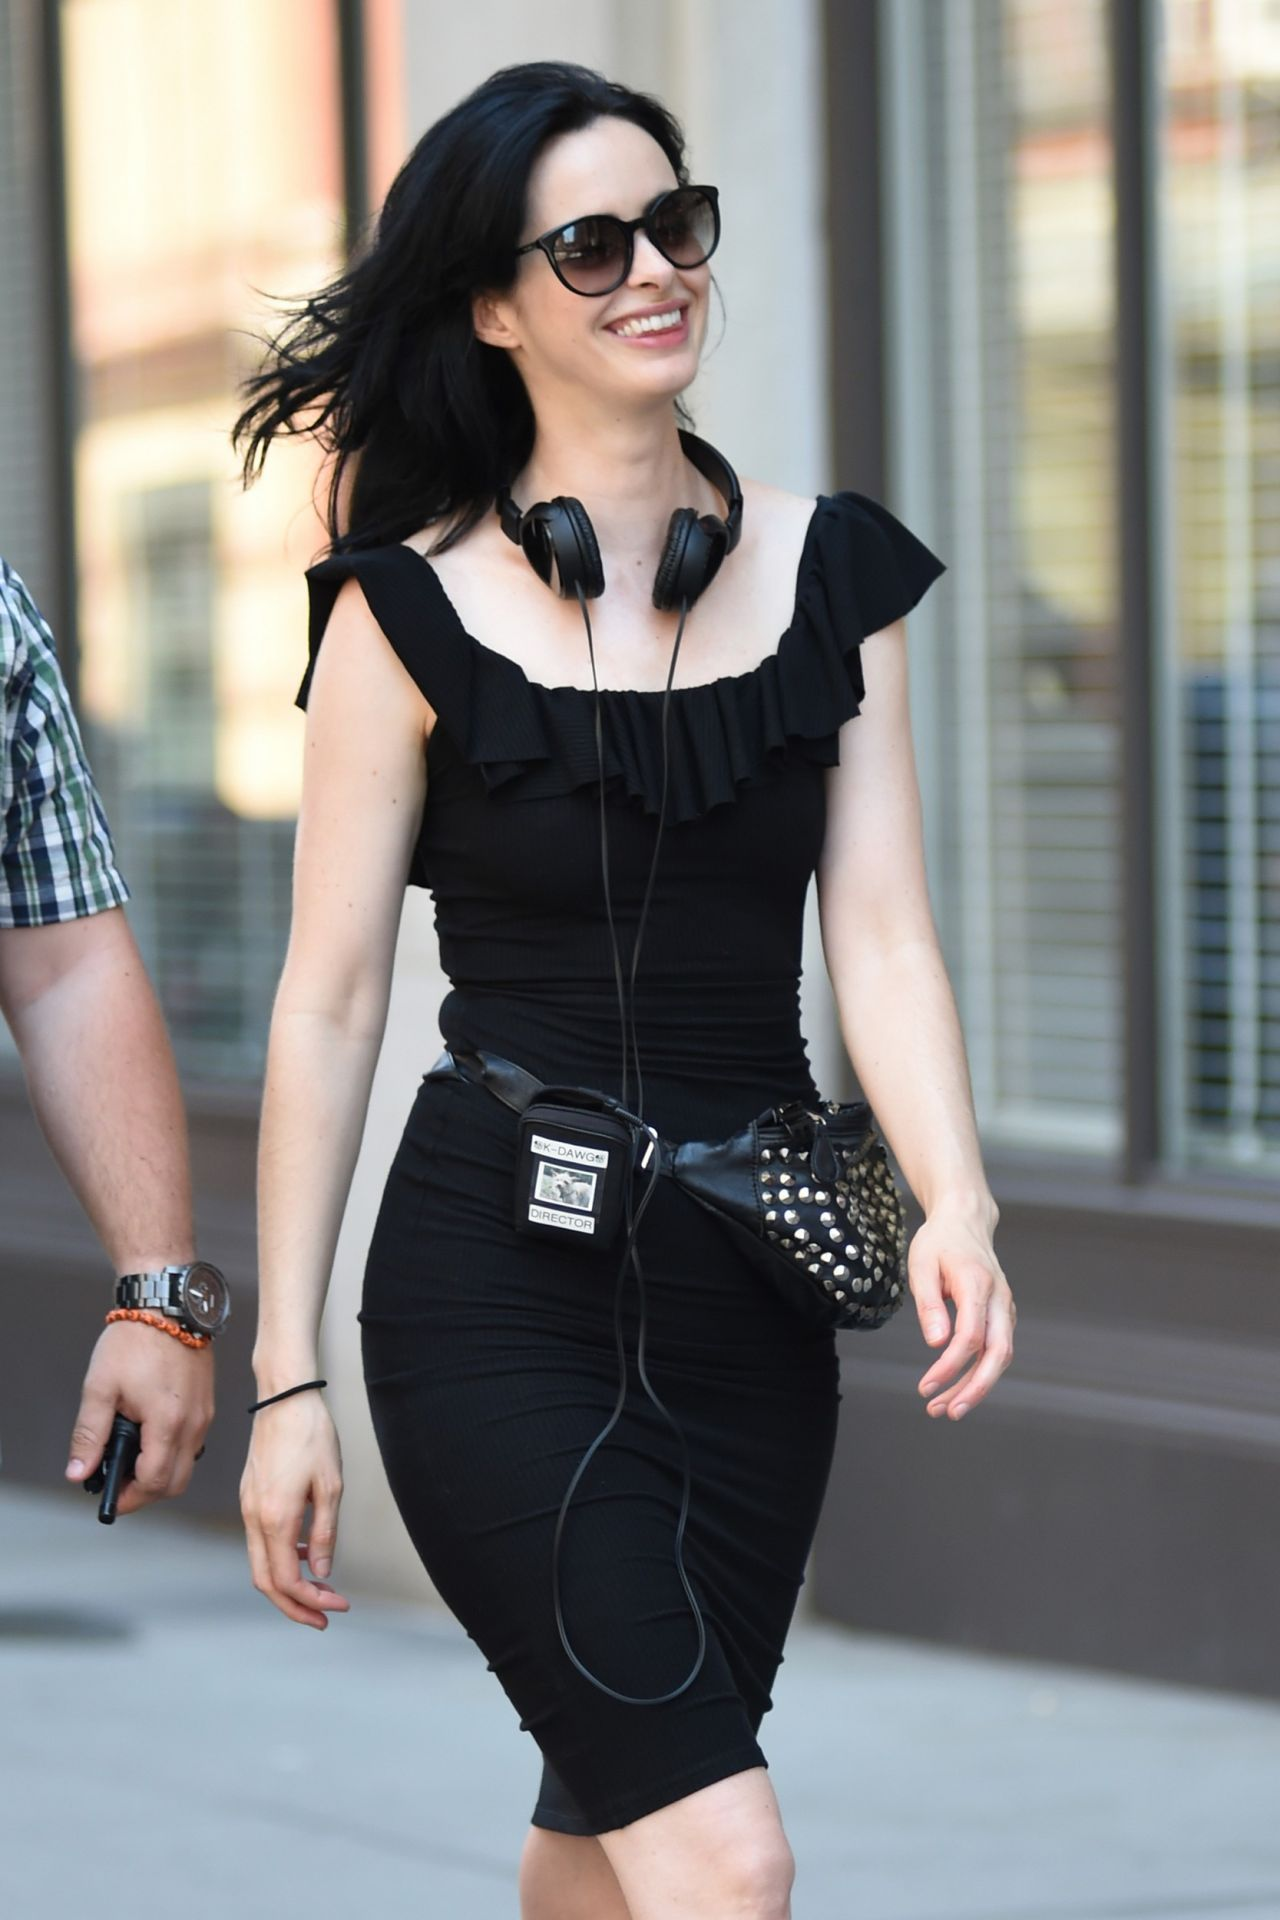 https://celebmafia.com/wp-content/uploads/2018/07/krysten-ritter-filming-jessica-jones-in-nyc-07-10-2018-2.jpg